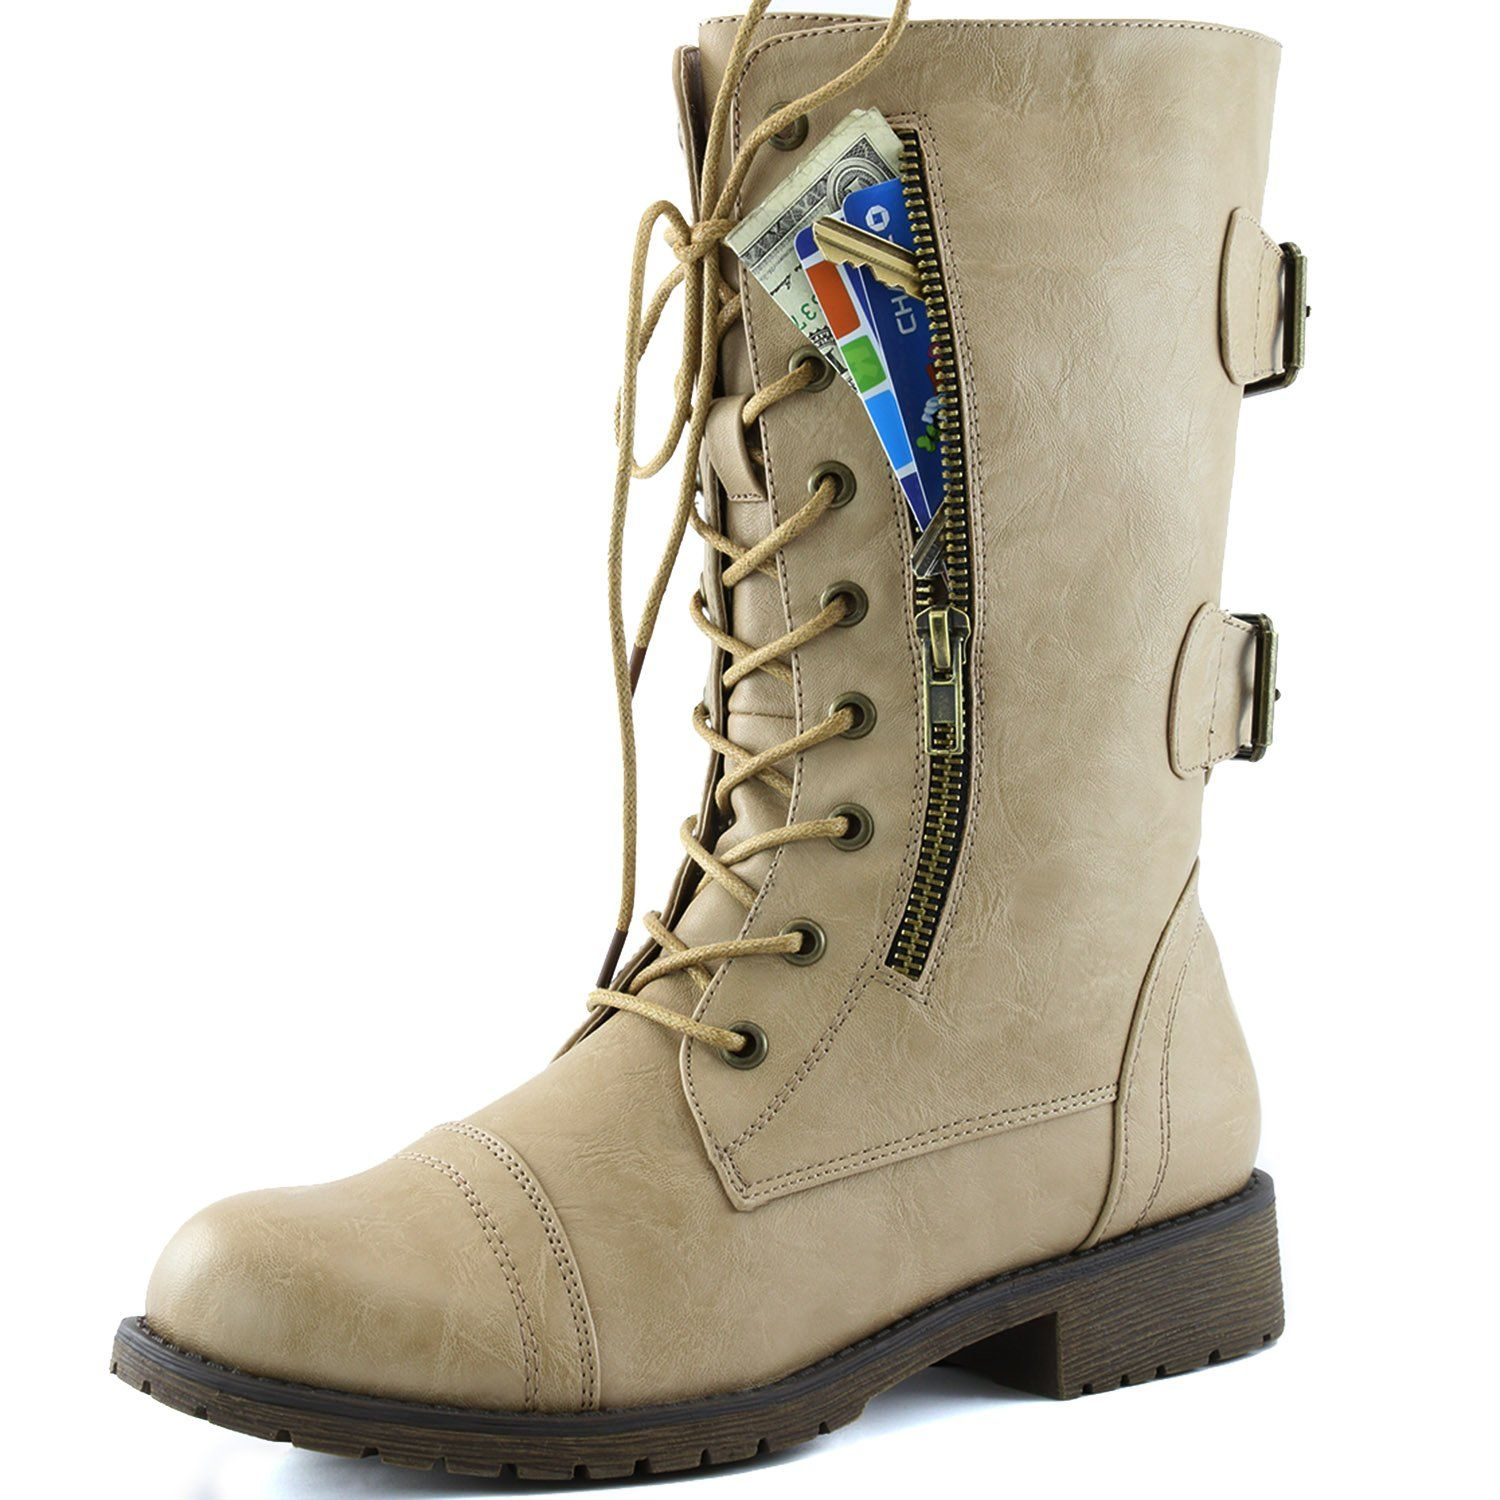 Women's Military Lace Up Buckle Combat Boots Ankle Mid Calf Fold-Down Exclusive Credit Card Pocket Brown Taupe